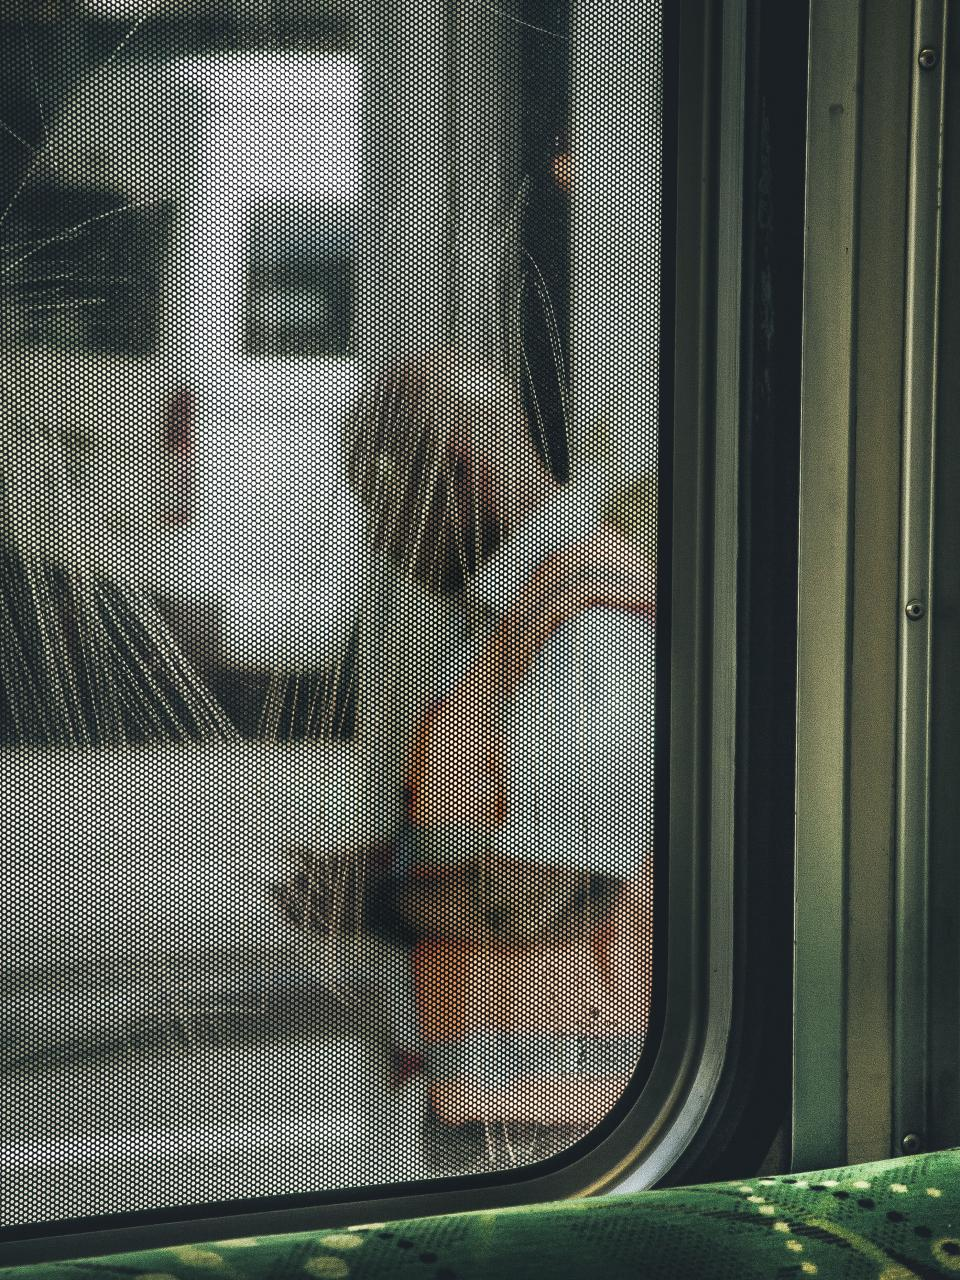 train window people man travel